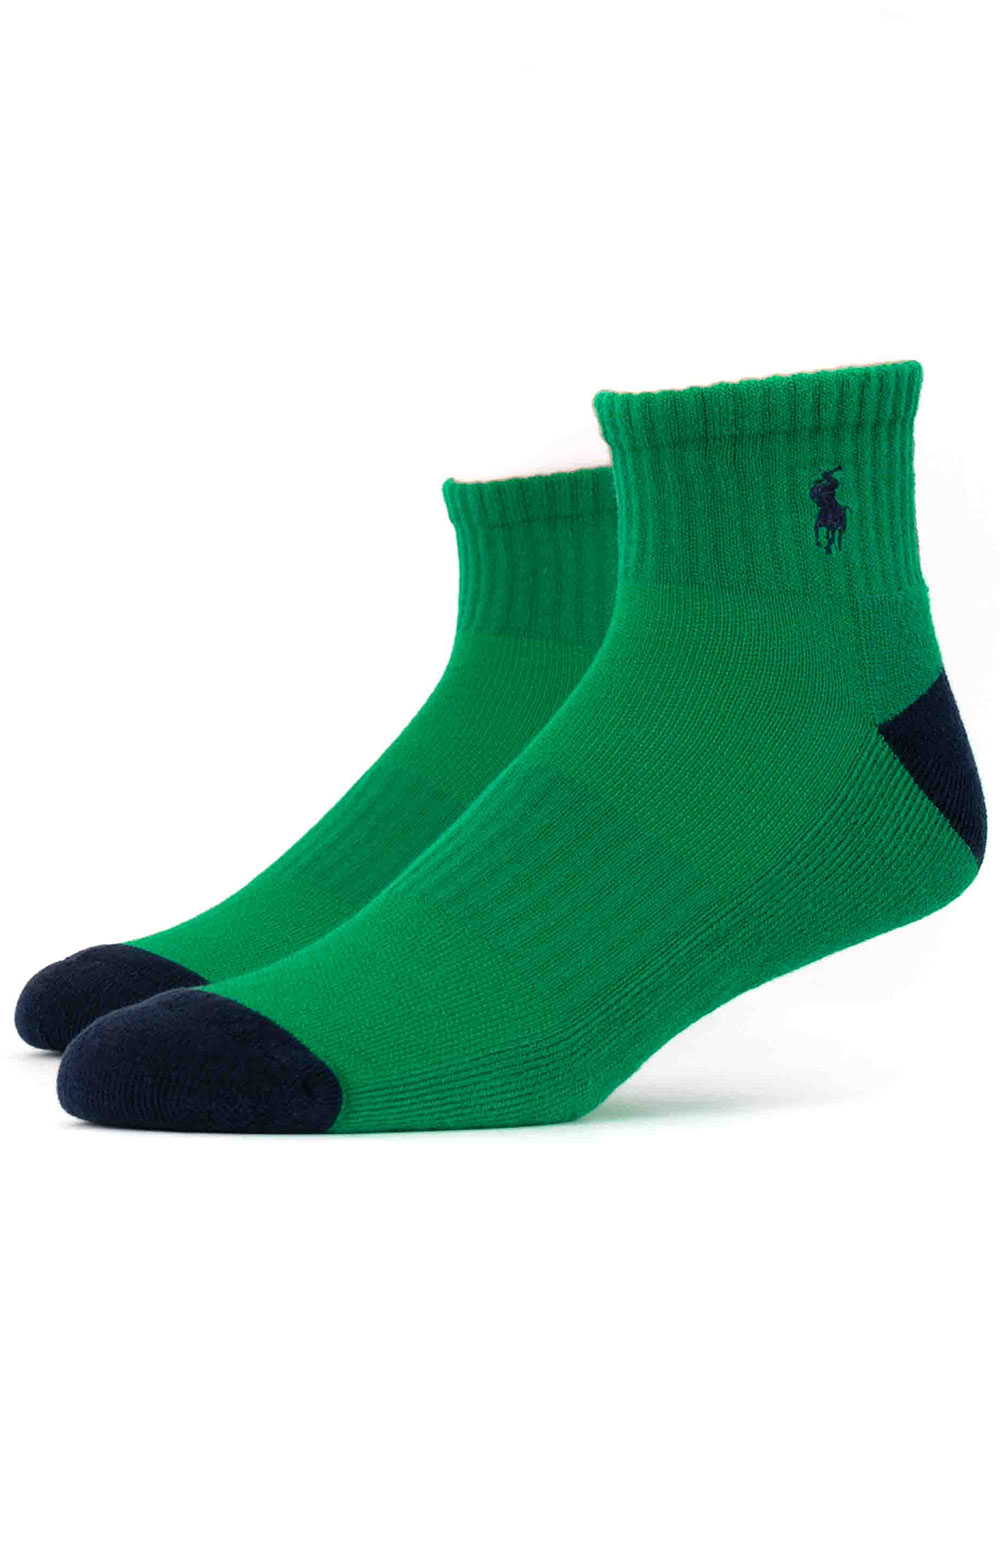 Colorblock Cushioned Quarter Socks - 6 Pack 6